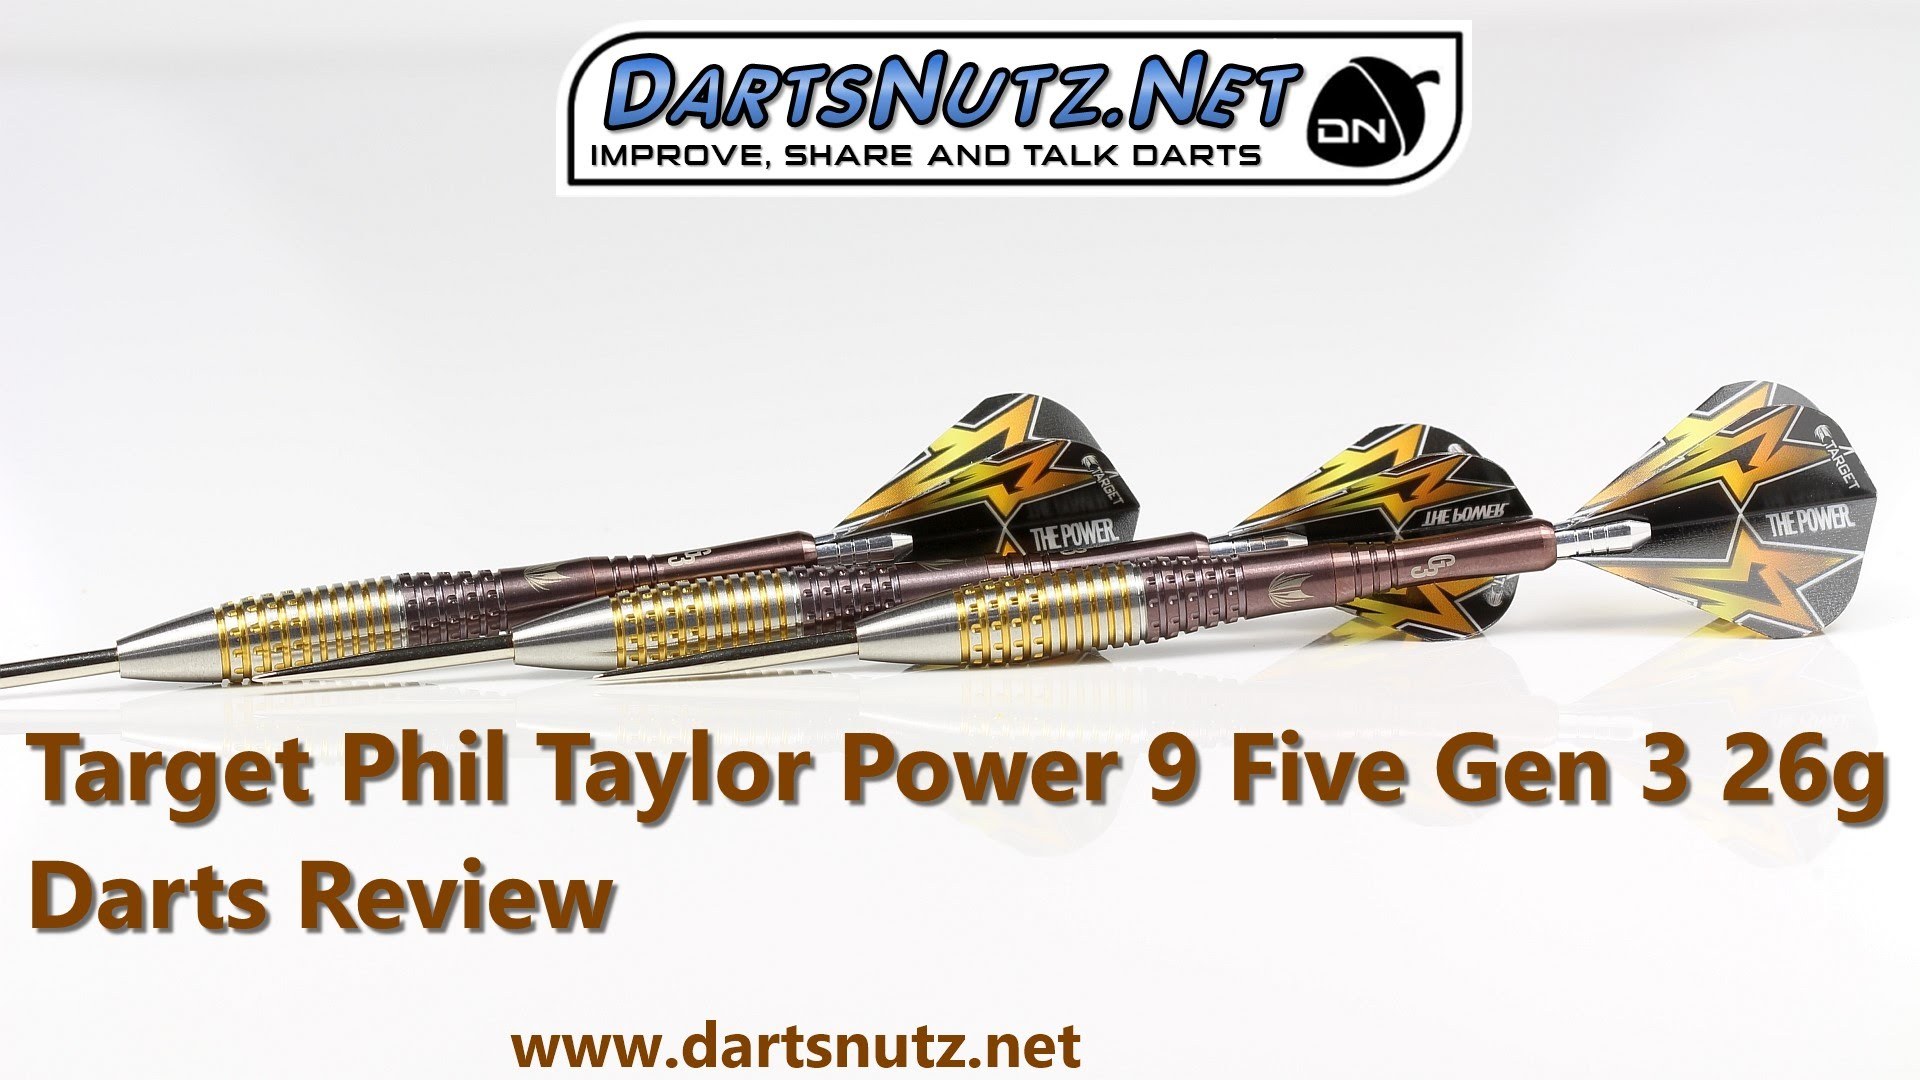 68071c5b3aa Target Phil Taylor Power 9Five Gen 3 26g darts review – Darts Planet